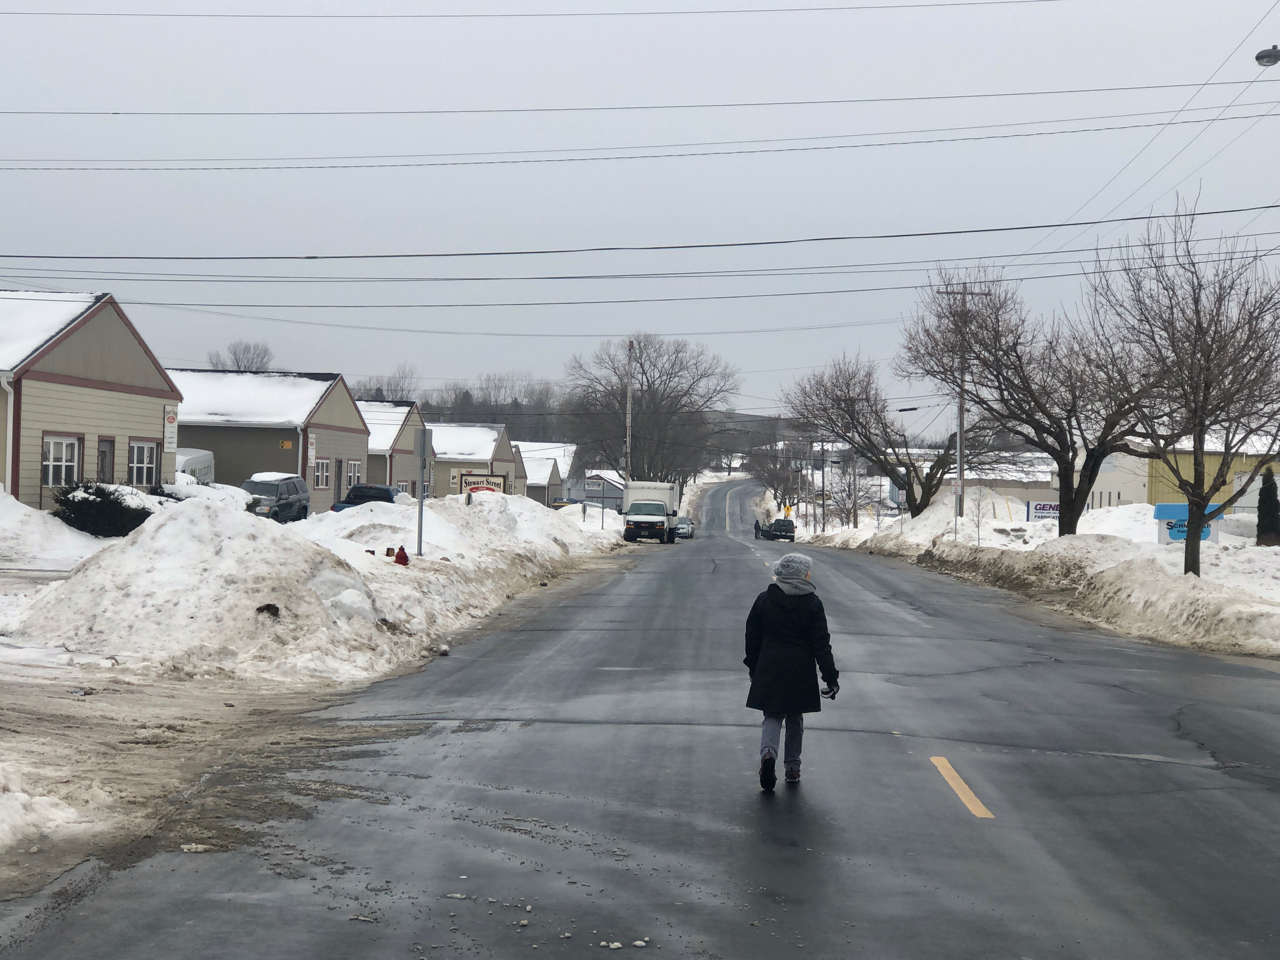 near the studio, February 2 2019